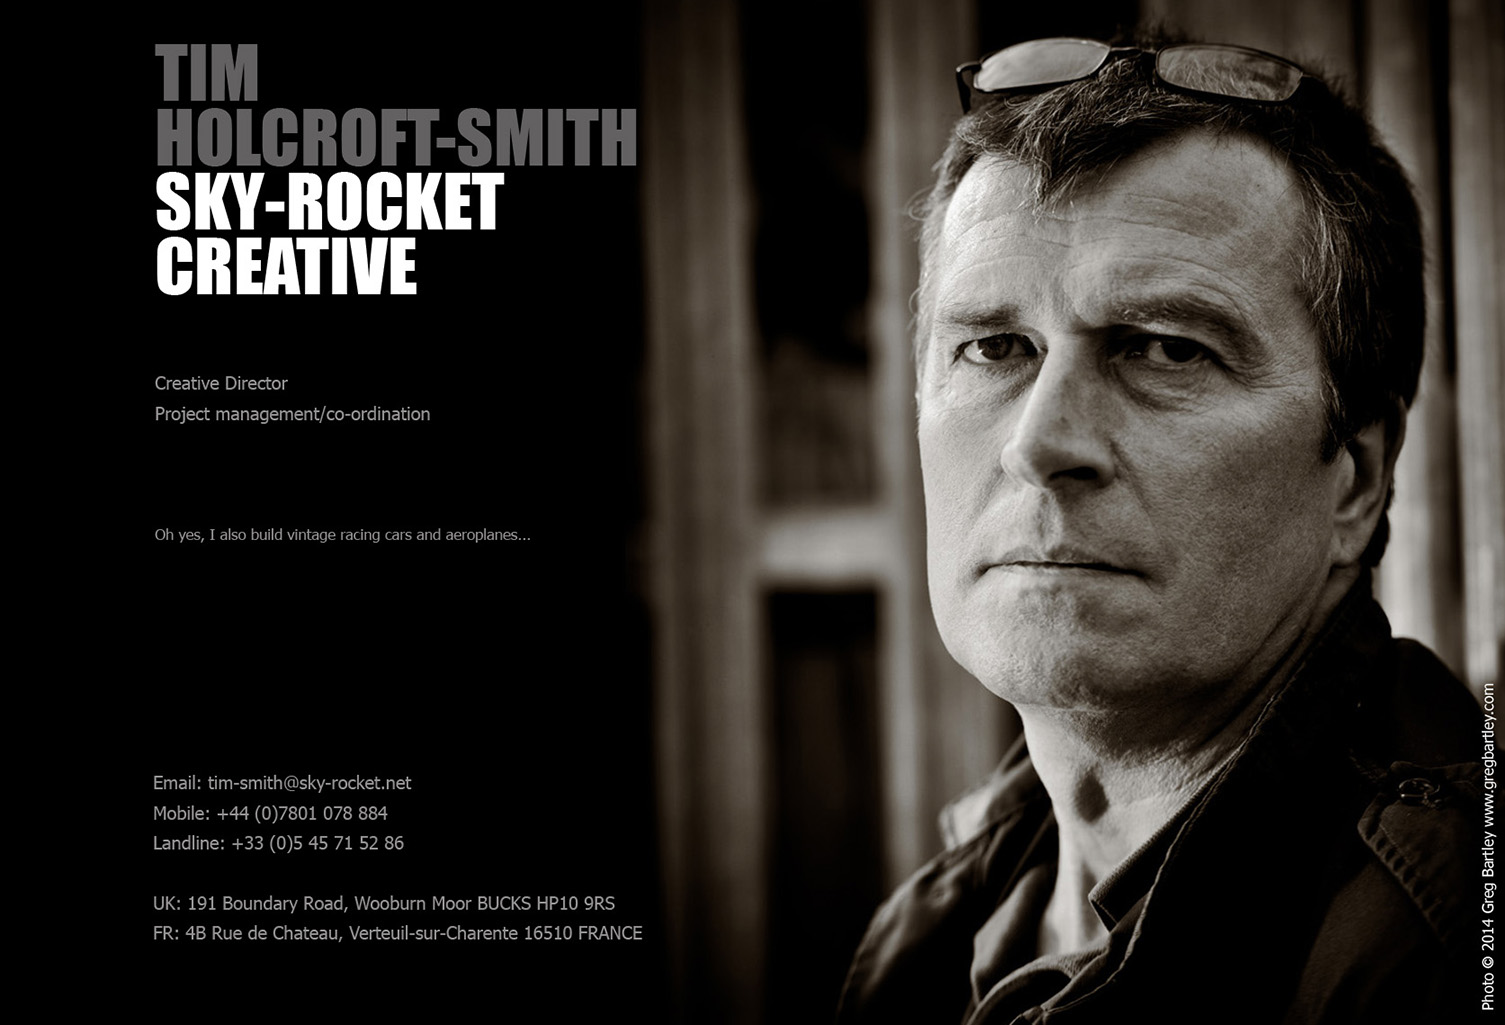 Tim Holcroft-Smith - Sky-Rocket Creative - Mobile: +44 (0)7801 678 884 - Landline: +33 (0)5 45 71 52 86